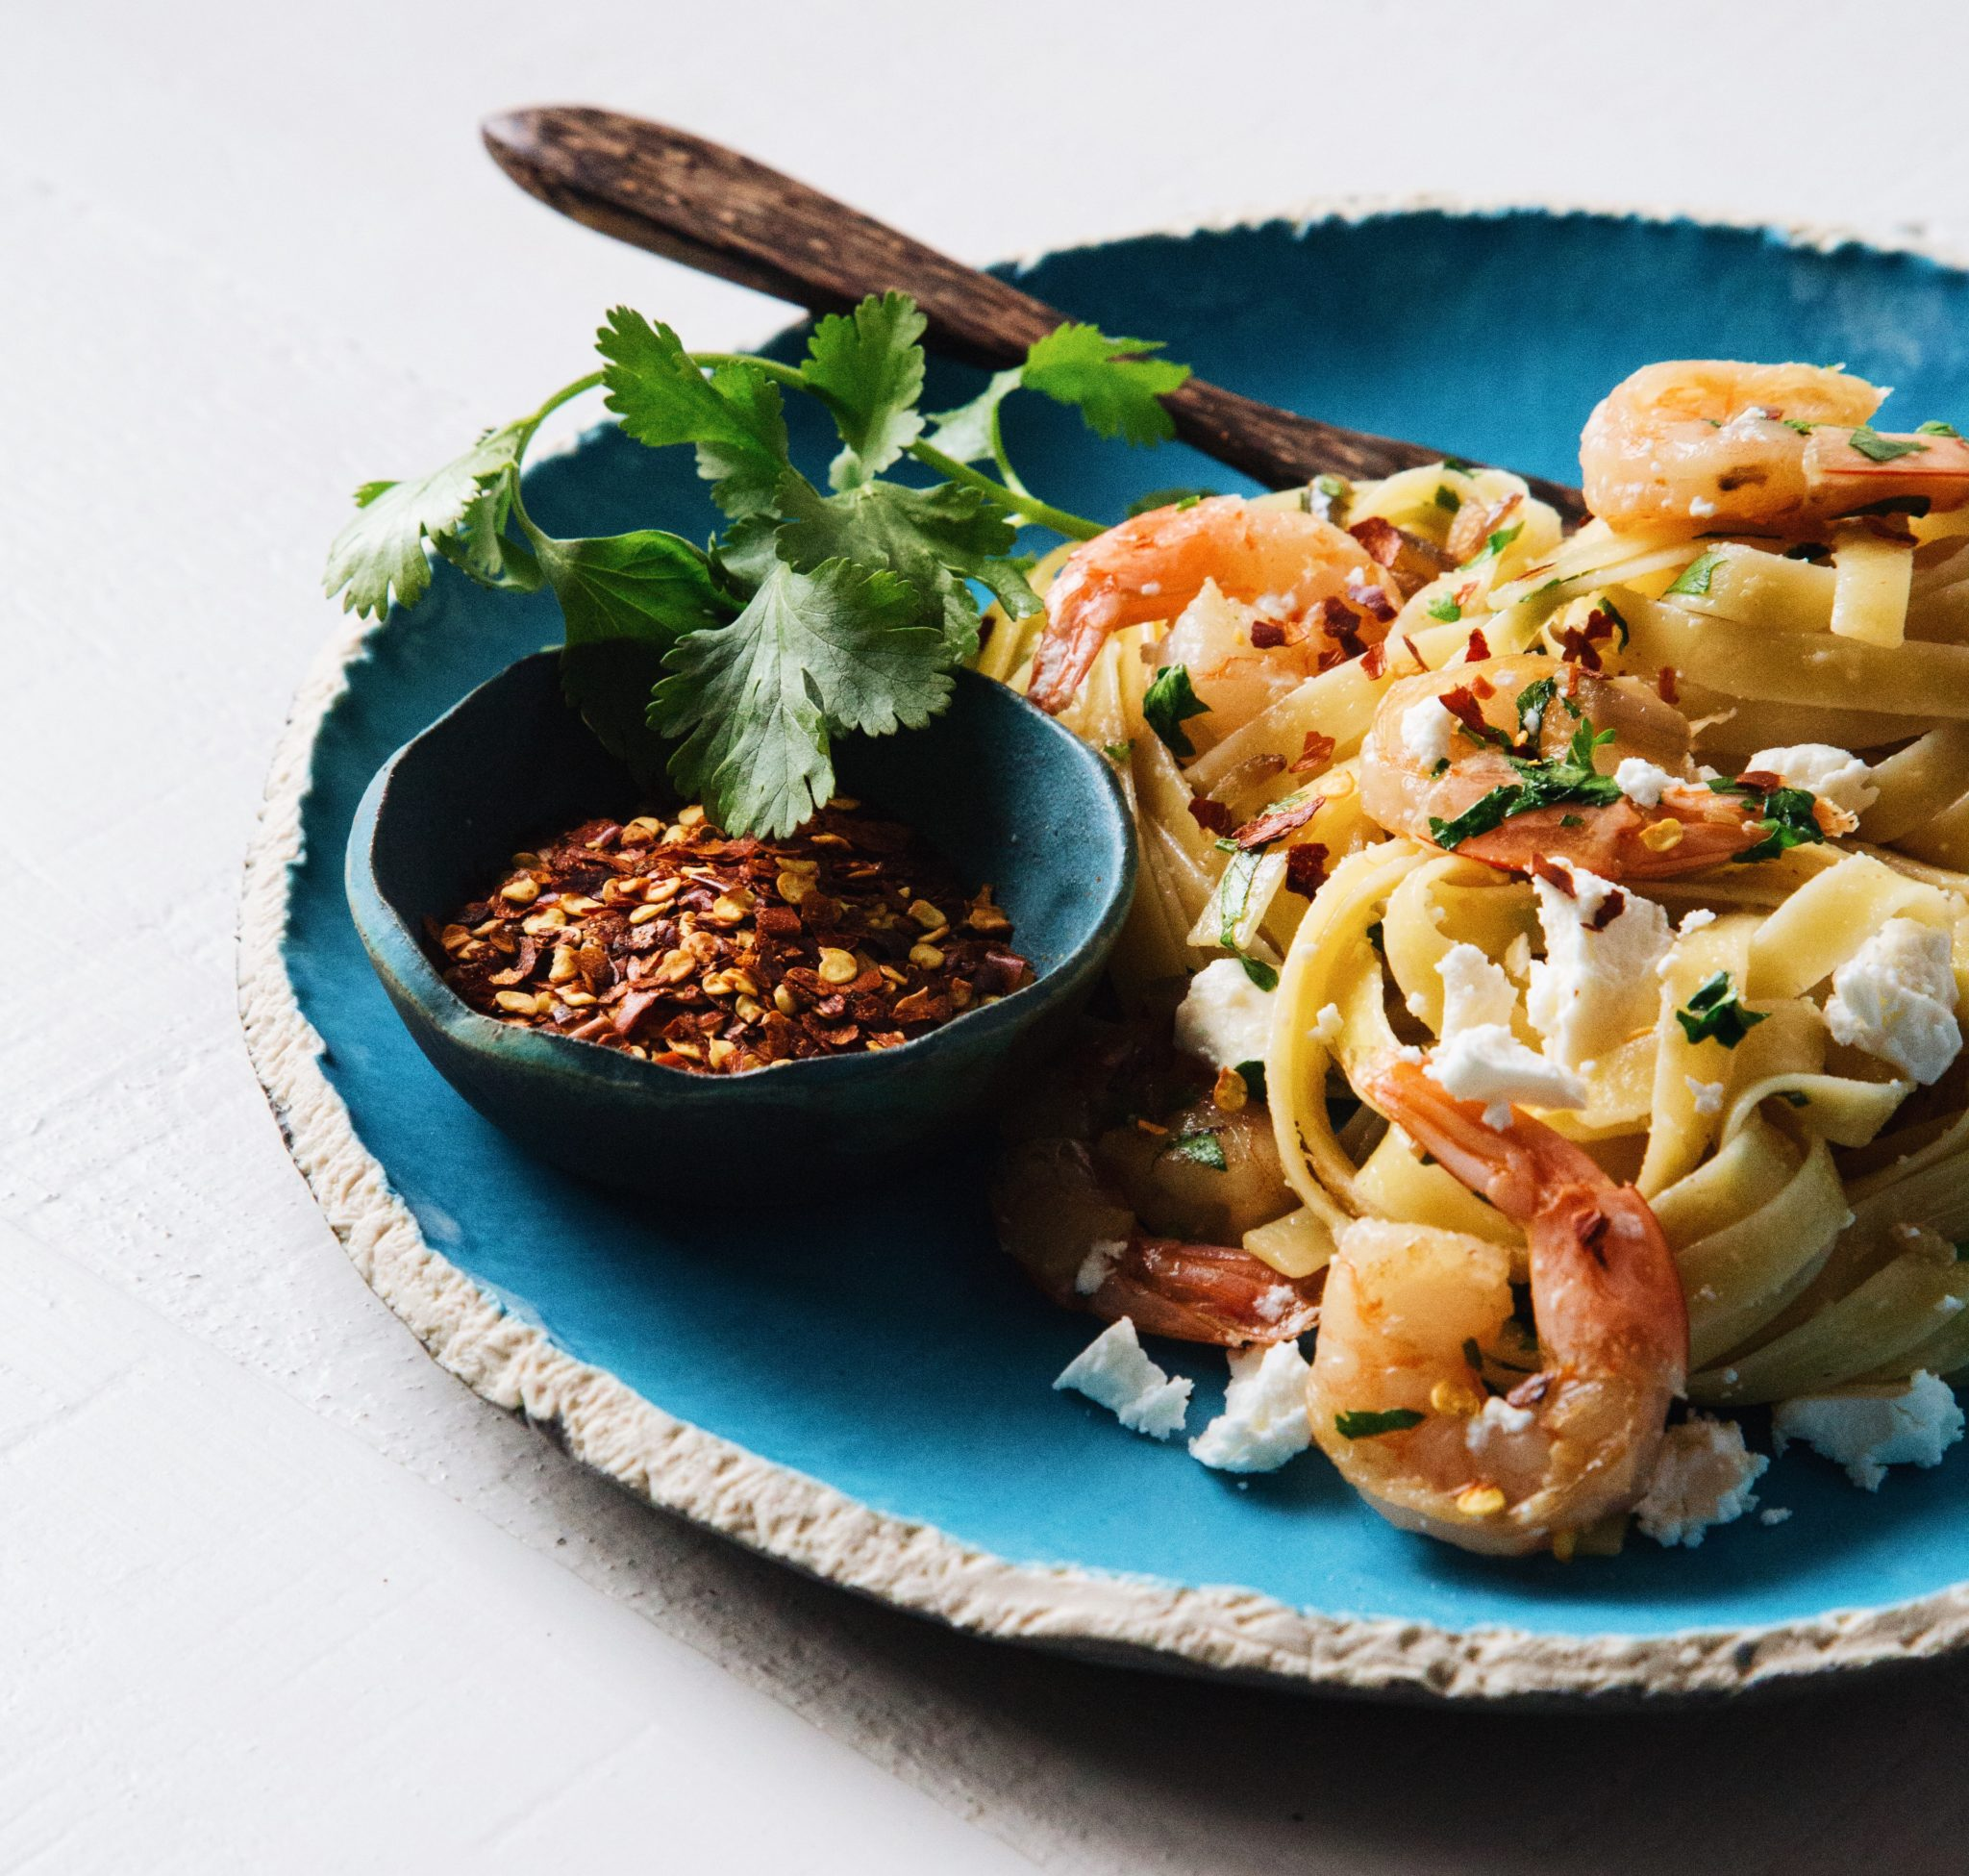 Fettucine with Chili Garlic Prawns, Feta and Cilantro